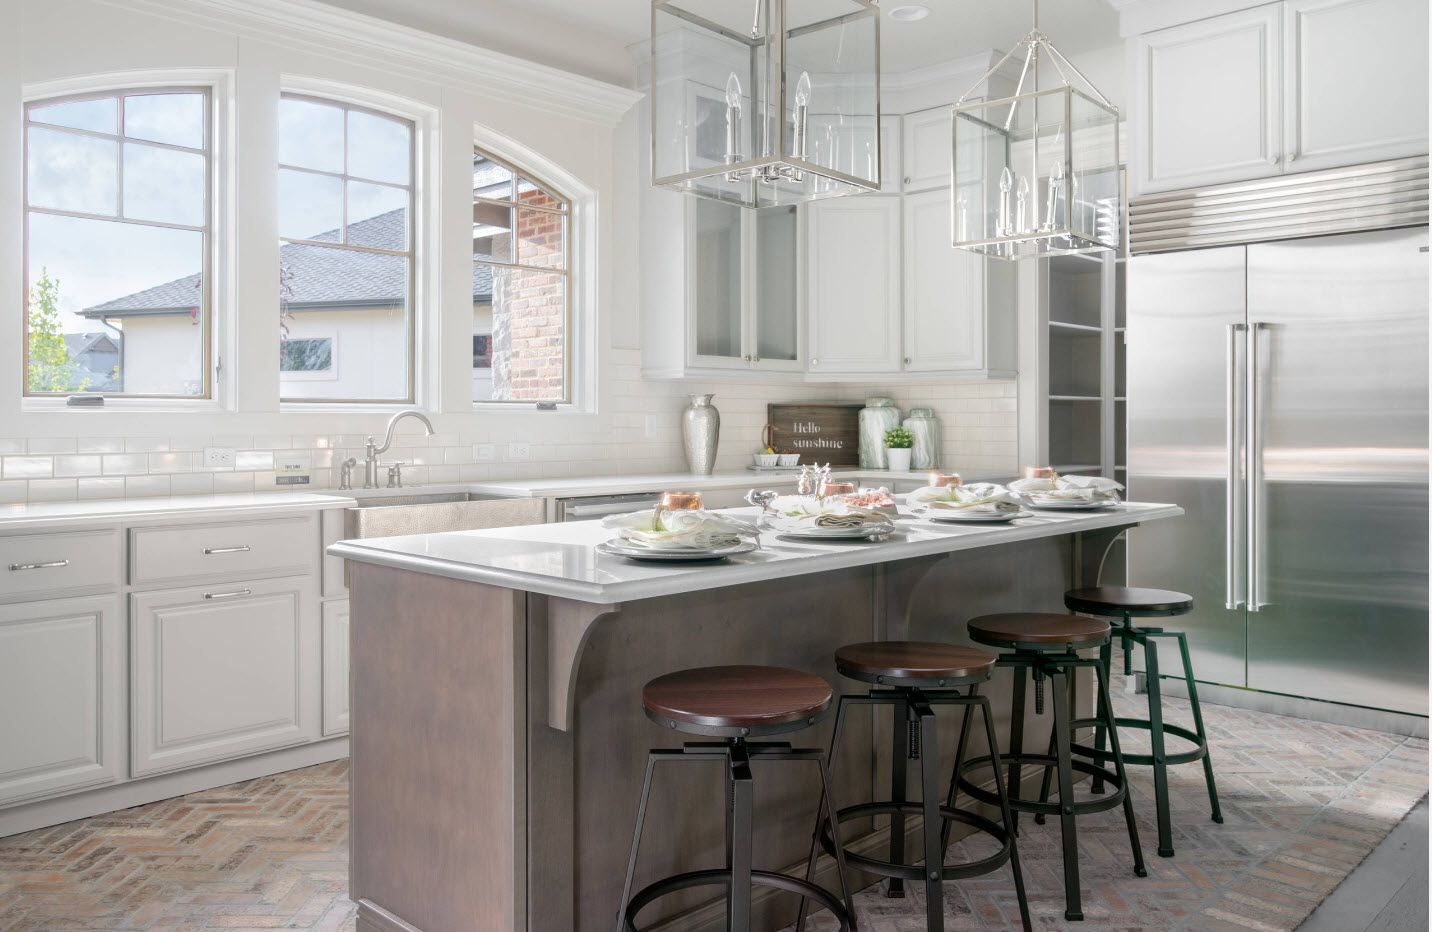 40 Square Feet Kitchen Modern Design Ideas & Layout Types. Elongated island with white glossy tabletop and spectacular glass boxed lampshade